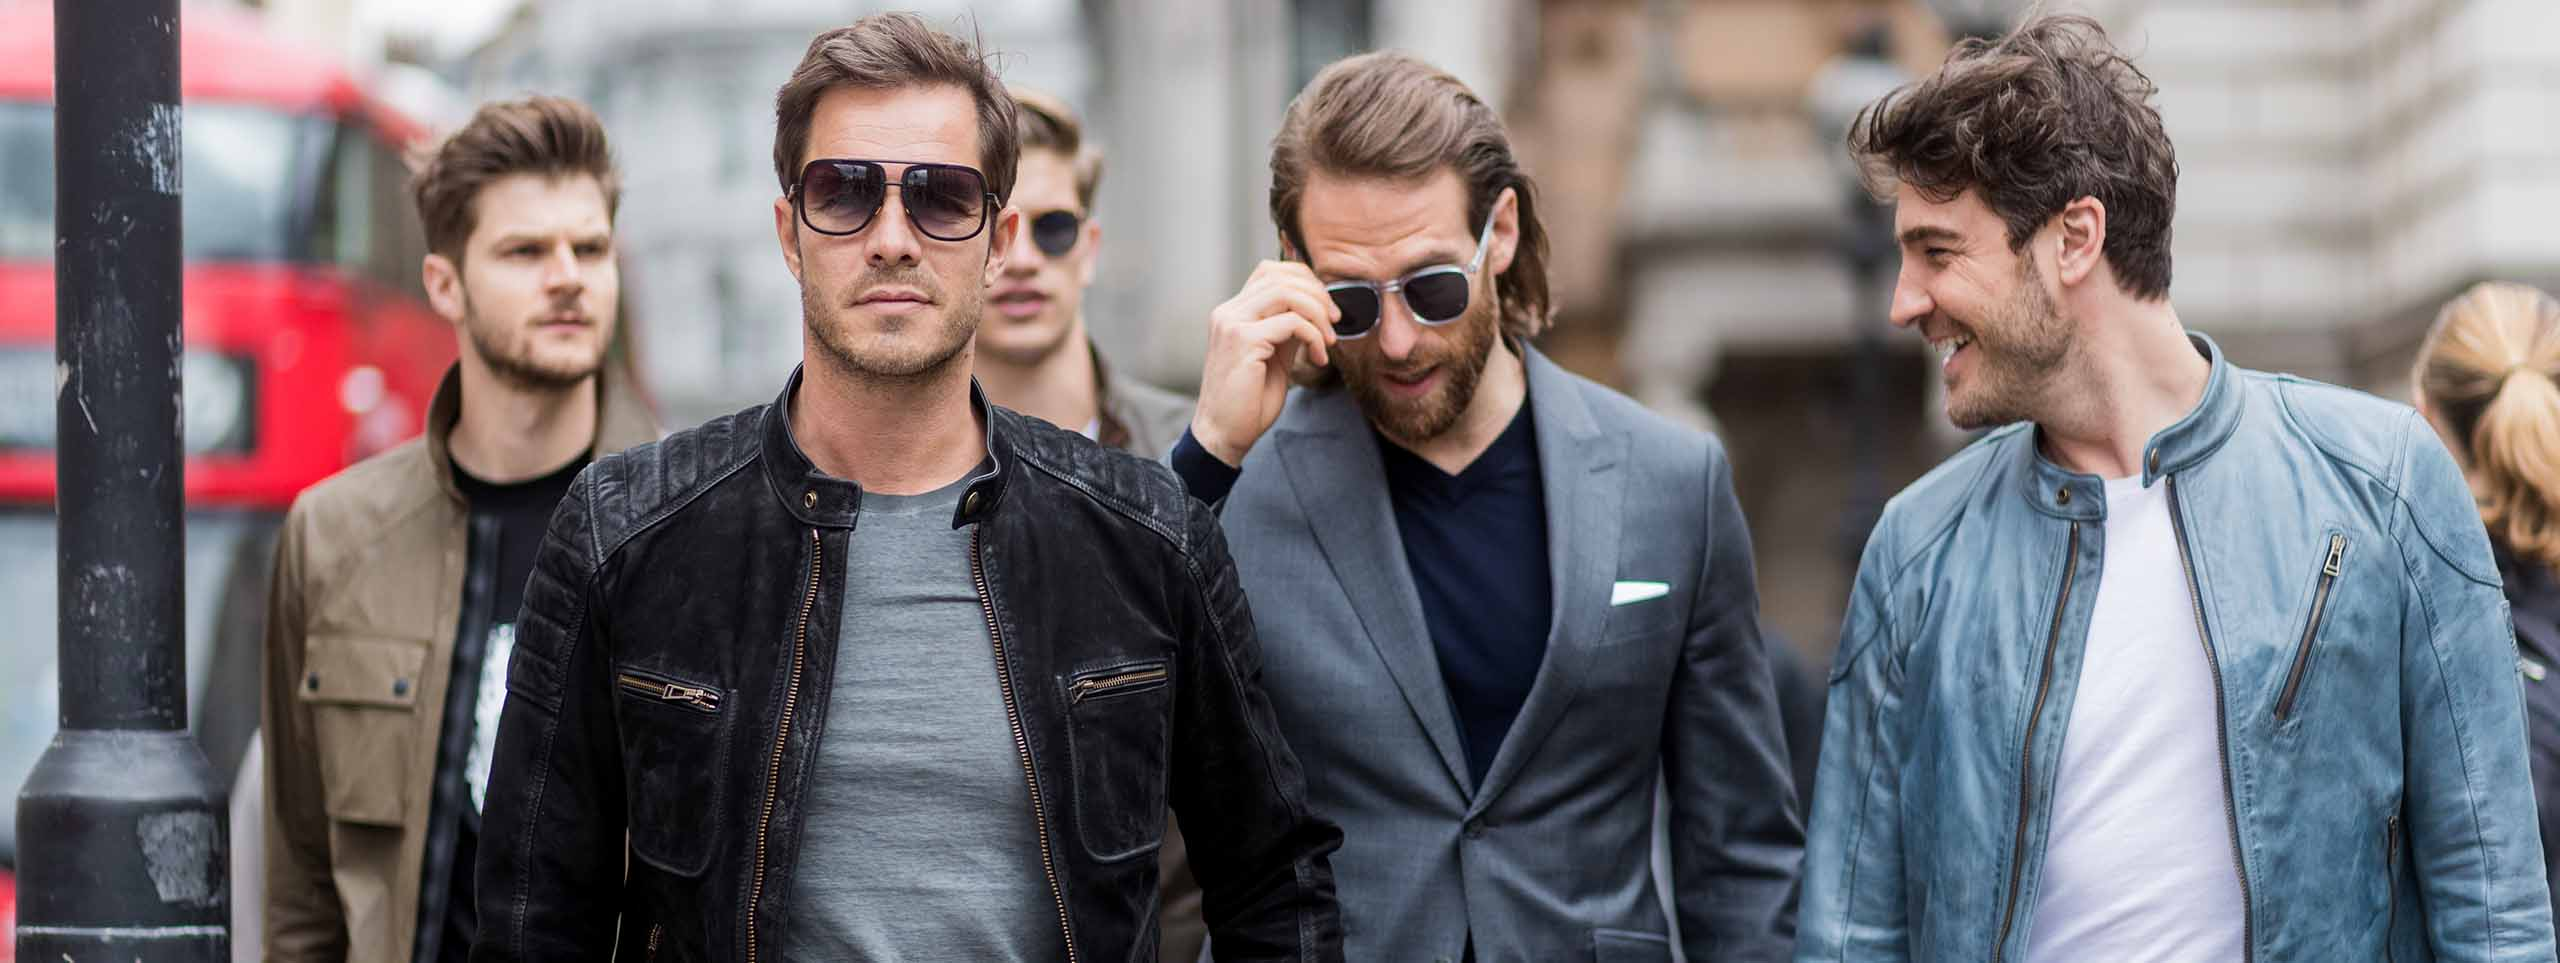 business casual hairstyles men photo - 1